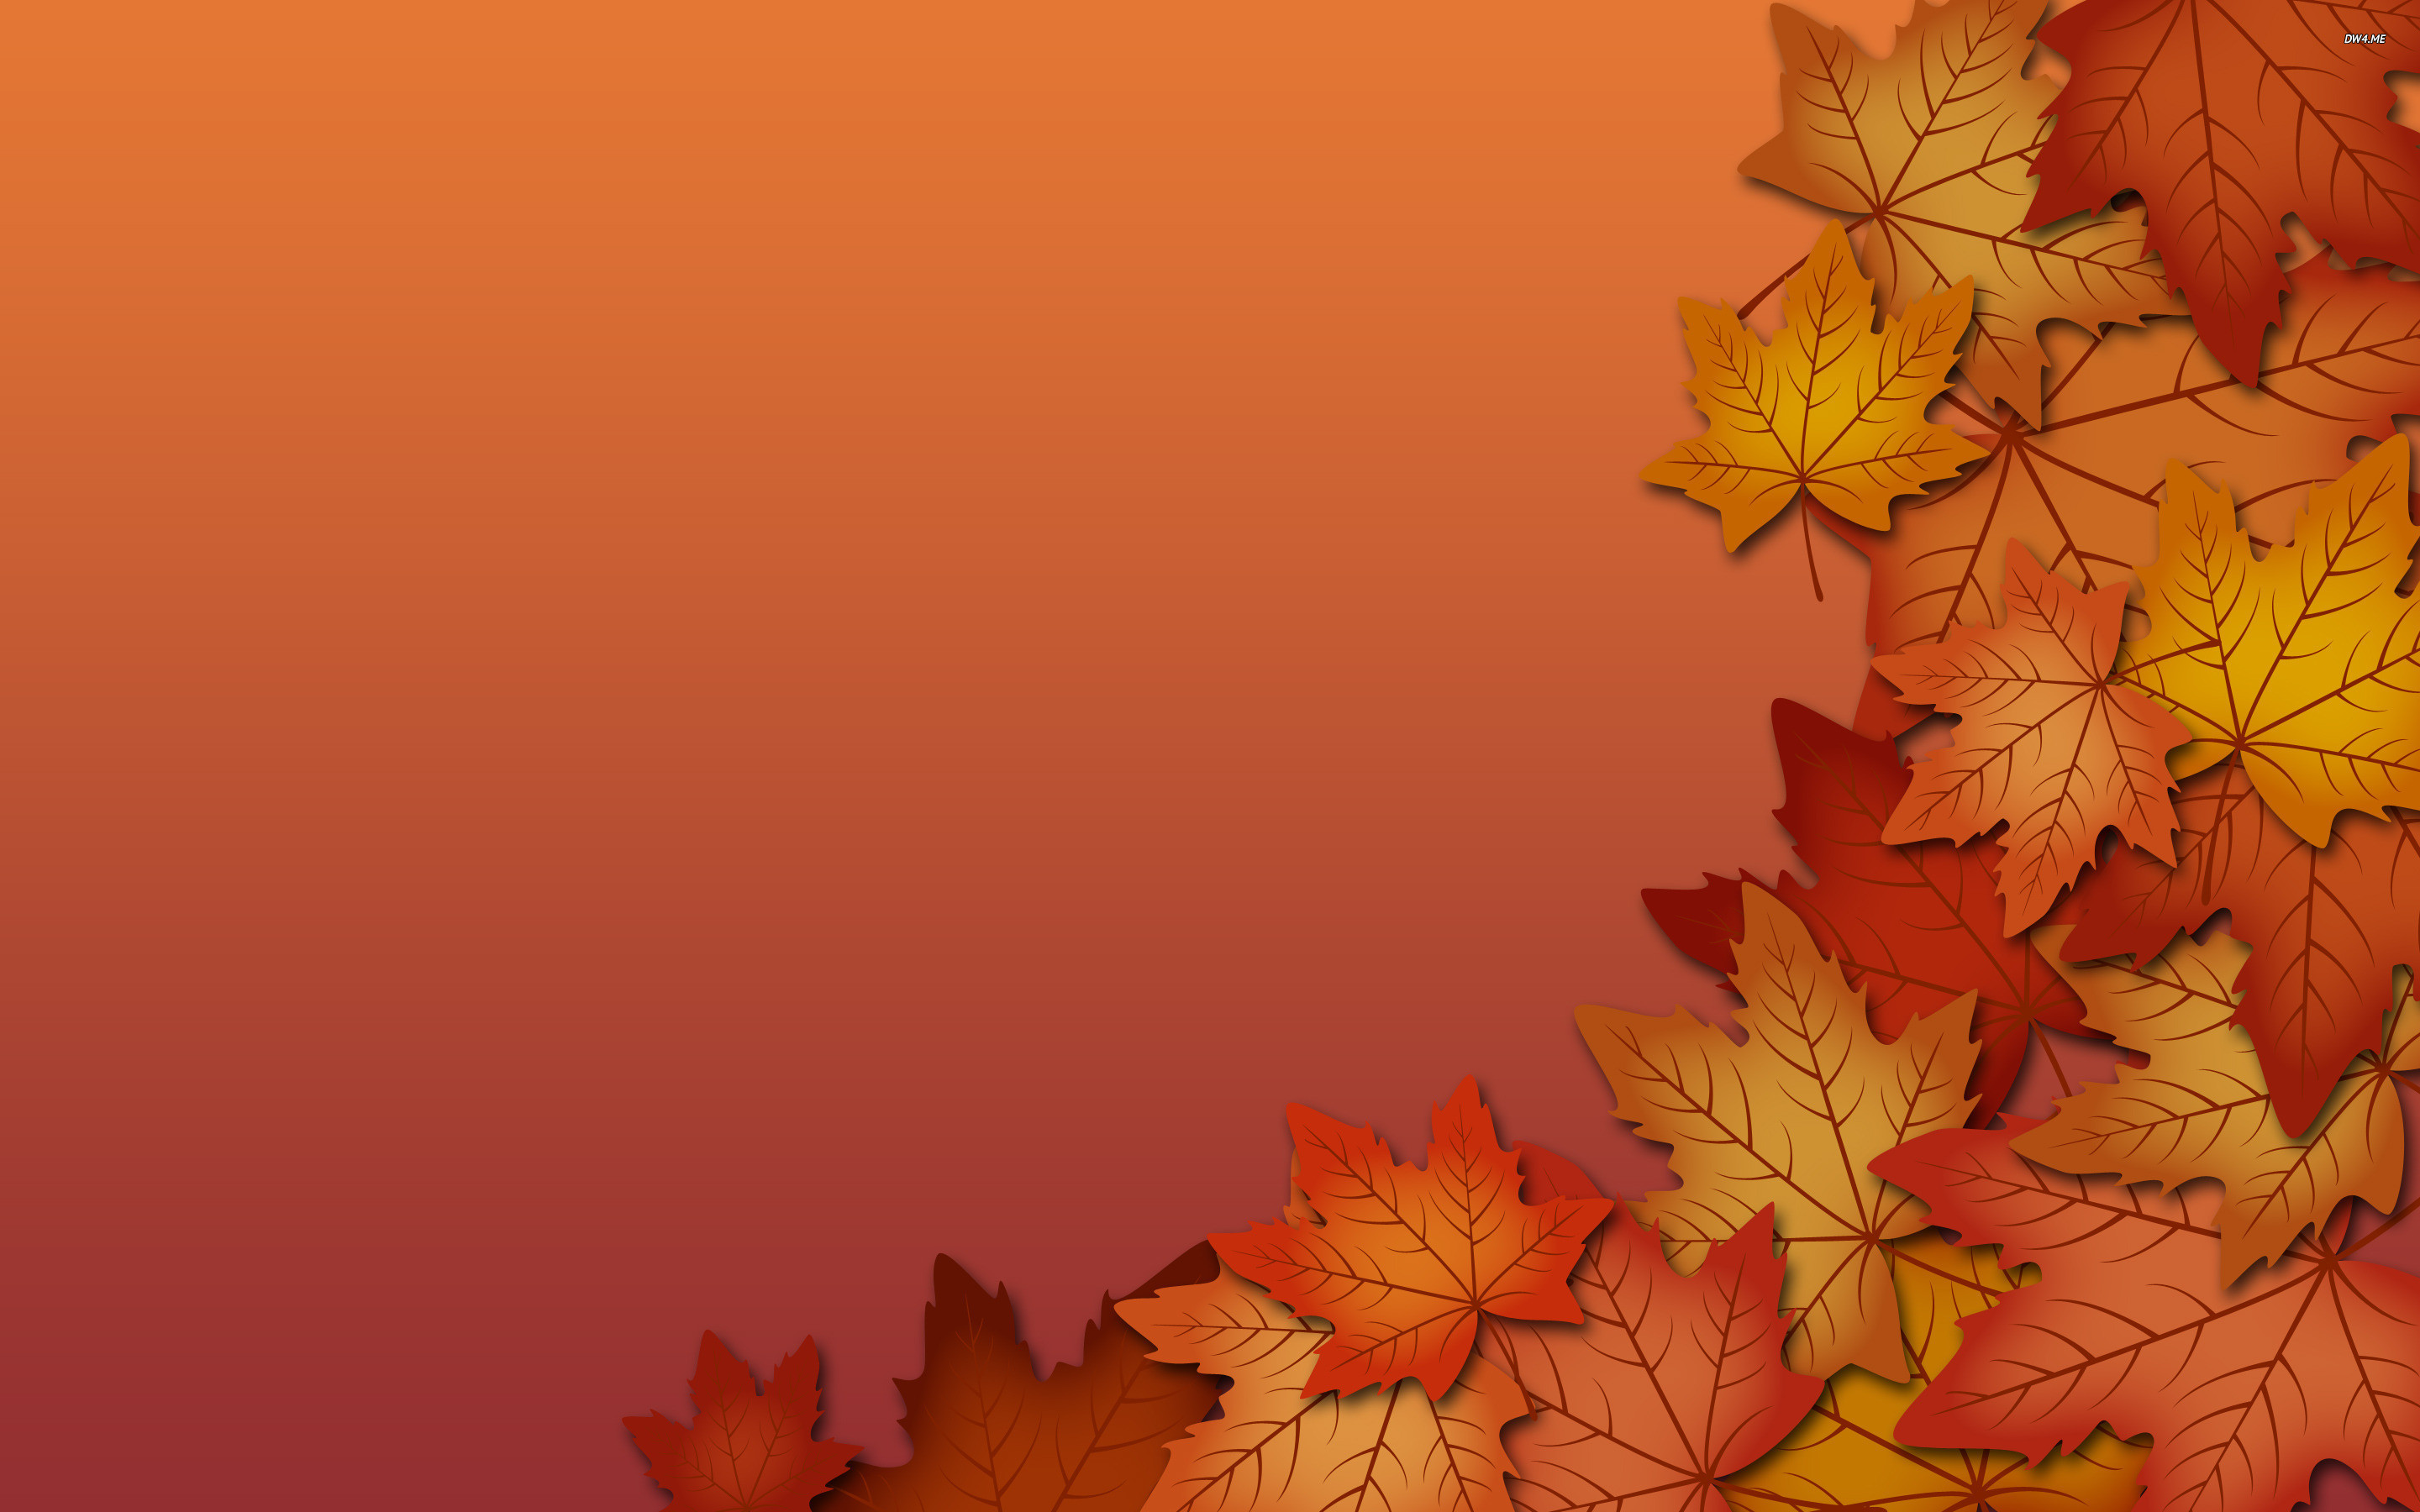 Res: 2880x1800, Top 15+ Images for High Resolution Thanksgiving Wallpaper | Image No: 09.  File